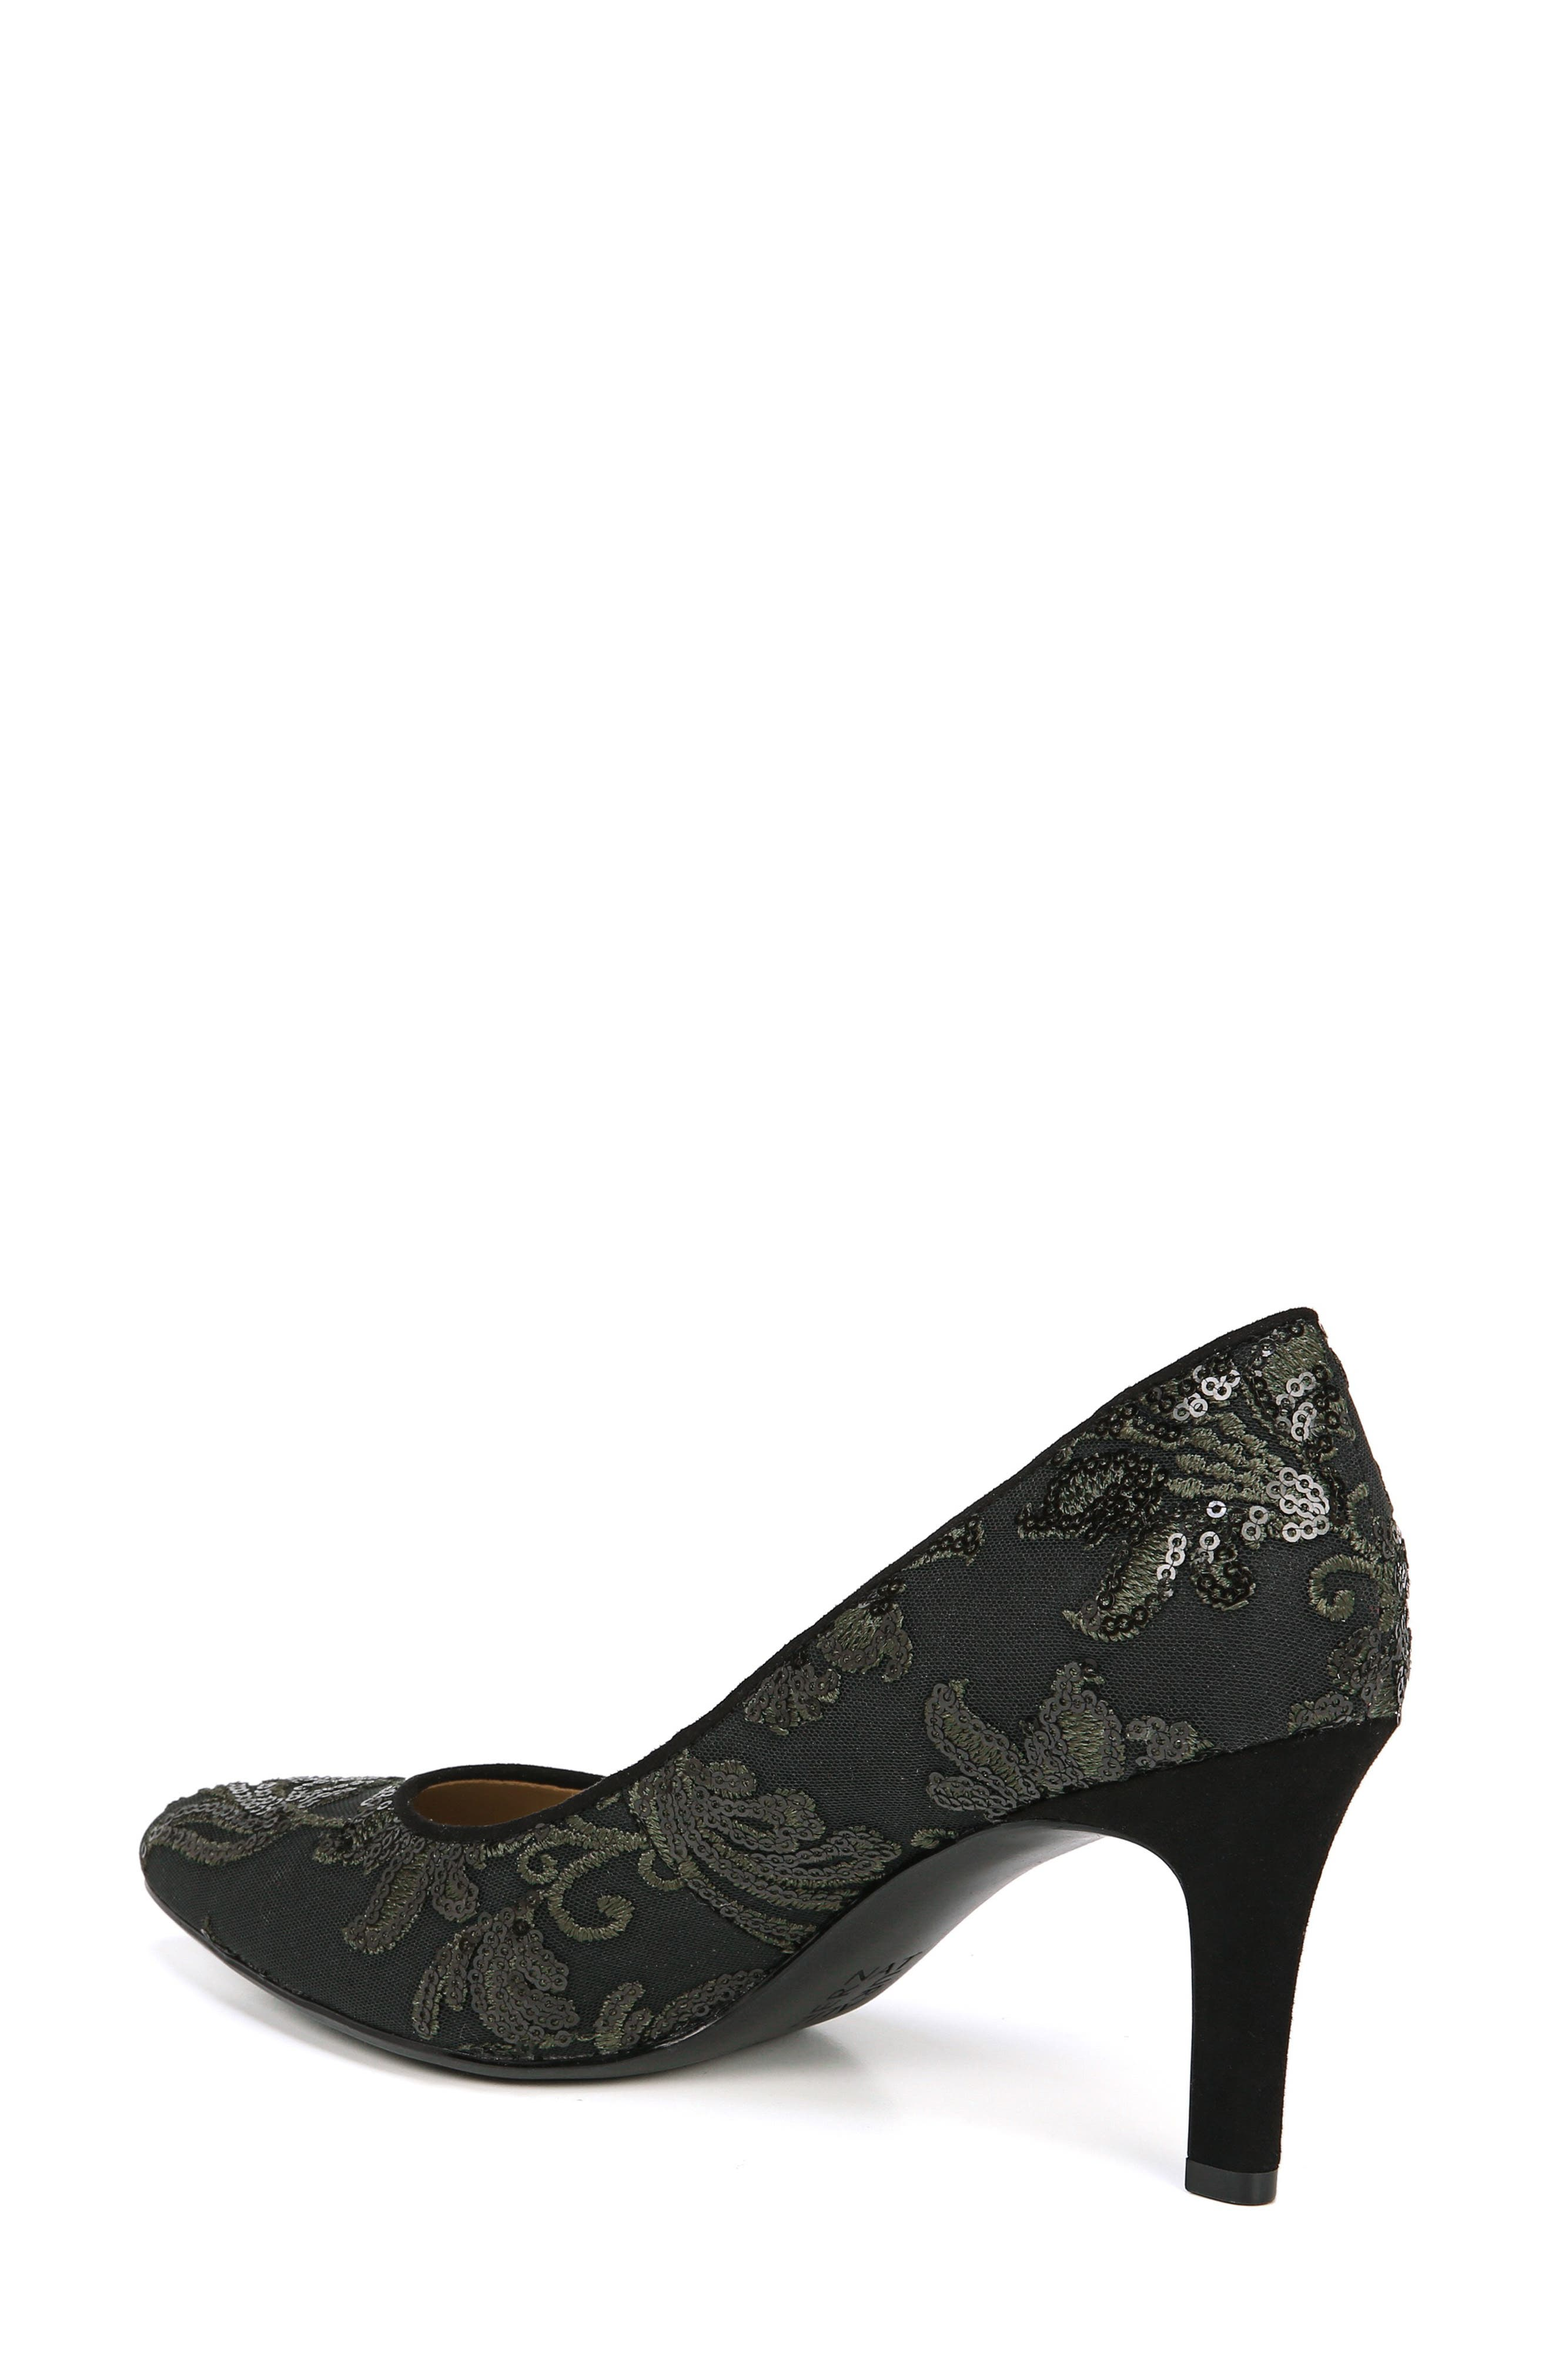 NATURALIZER, Natalie Pointy Toe Pump, Alternate thumbnail 2, color, FERN GREEN EMBROIDERED